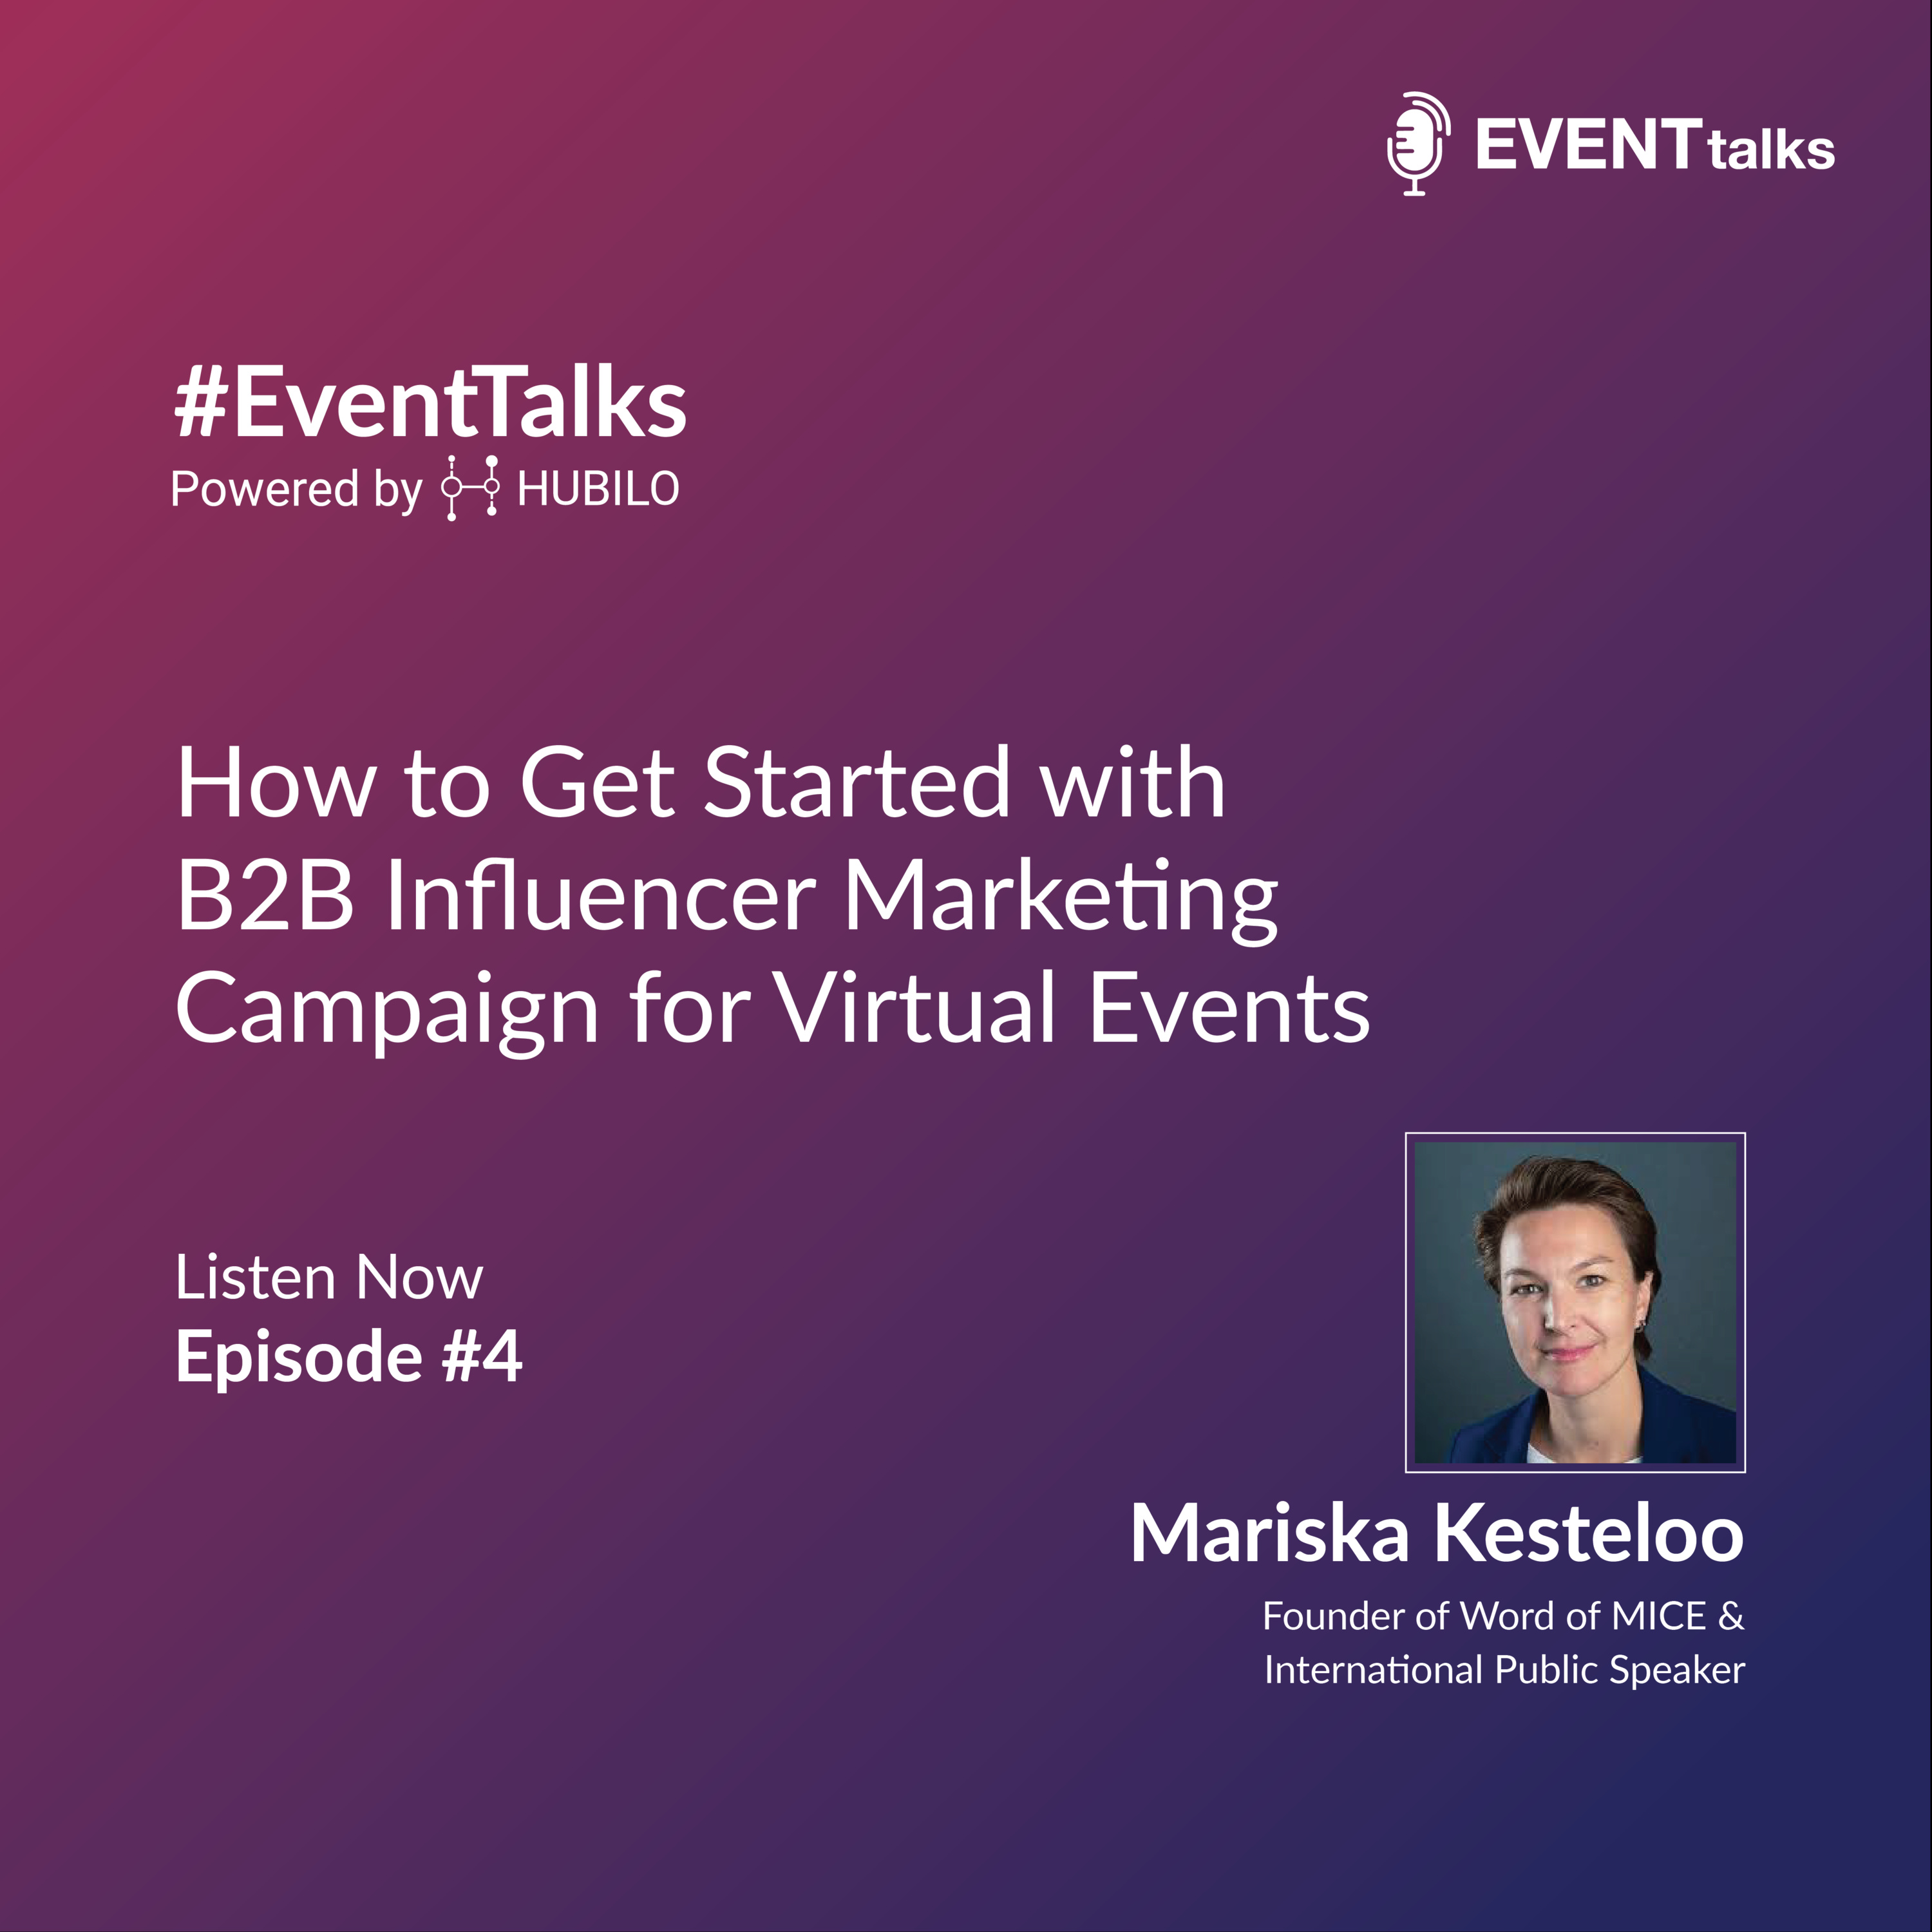 [#EventTalks] Episode #4: How to Get Started With B2B Influencer Marketing with Mariska Kesteloo